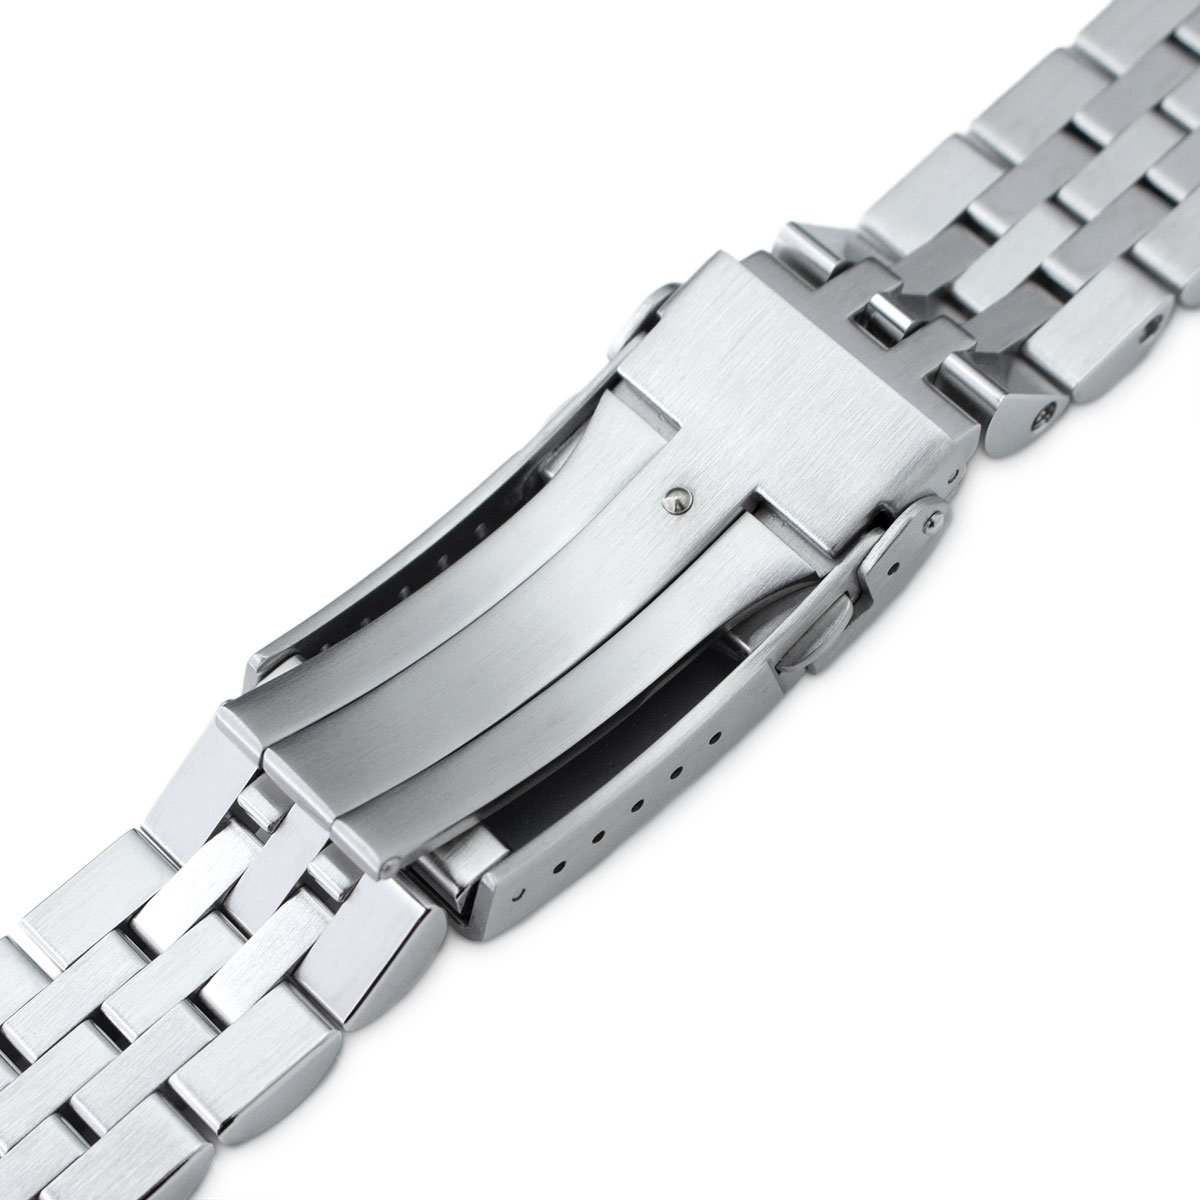 20mm Angus Jubilee 316L SS Watch Bracelet for Seiko Alpinist SARB017, V-Clasp by Seiko Replacement by MiLTAT (Image #7)